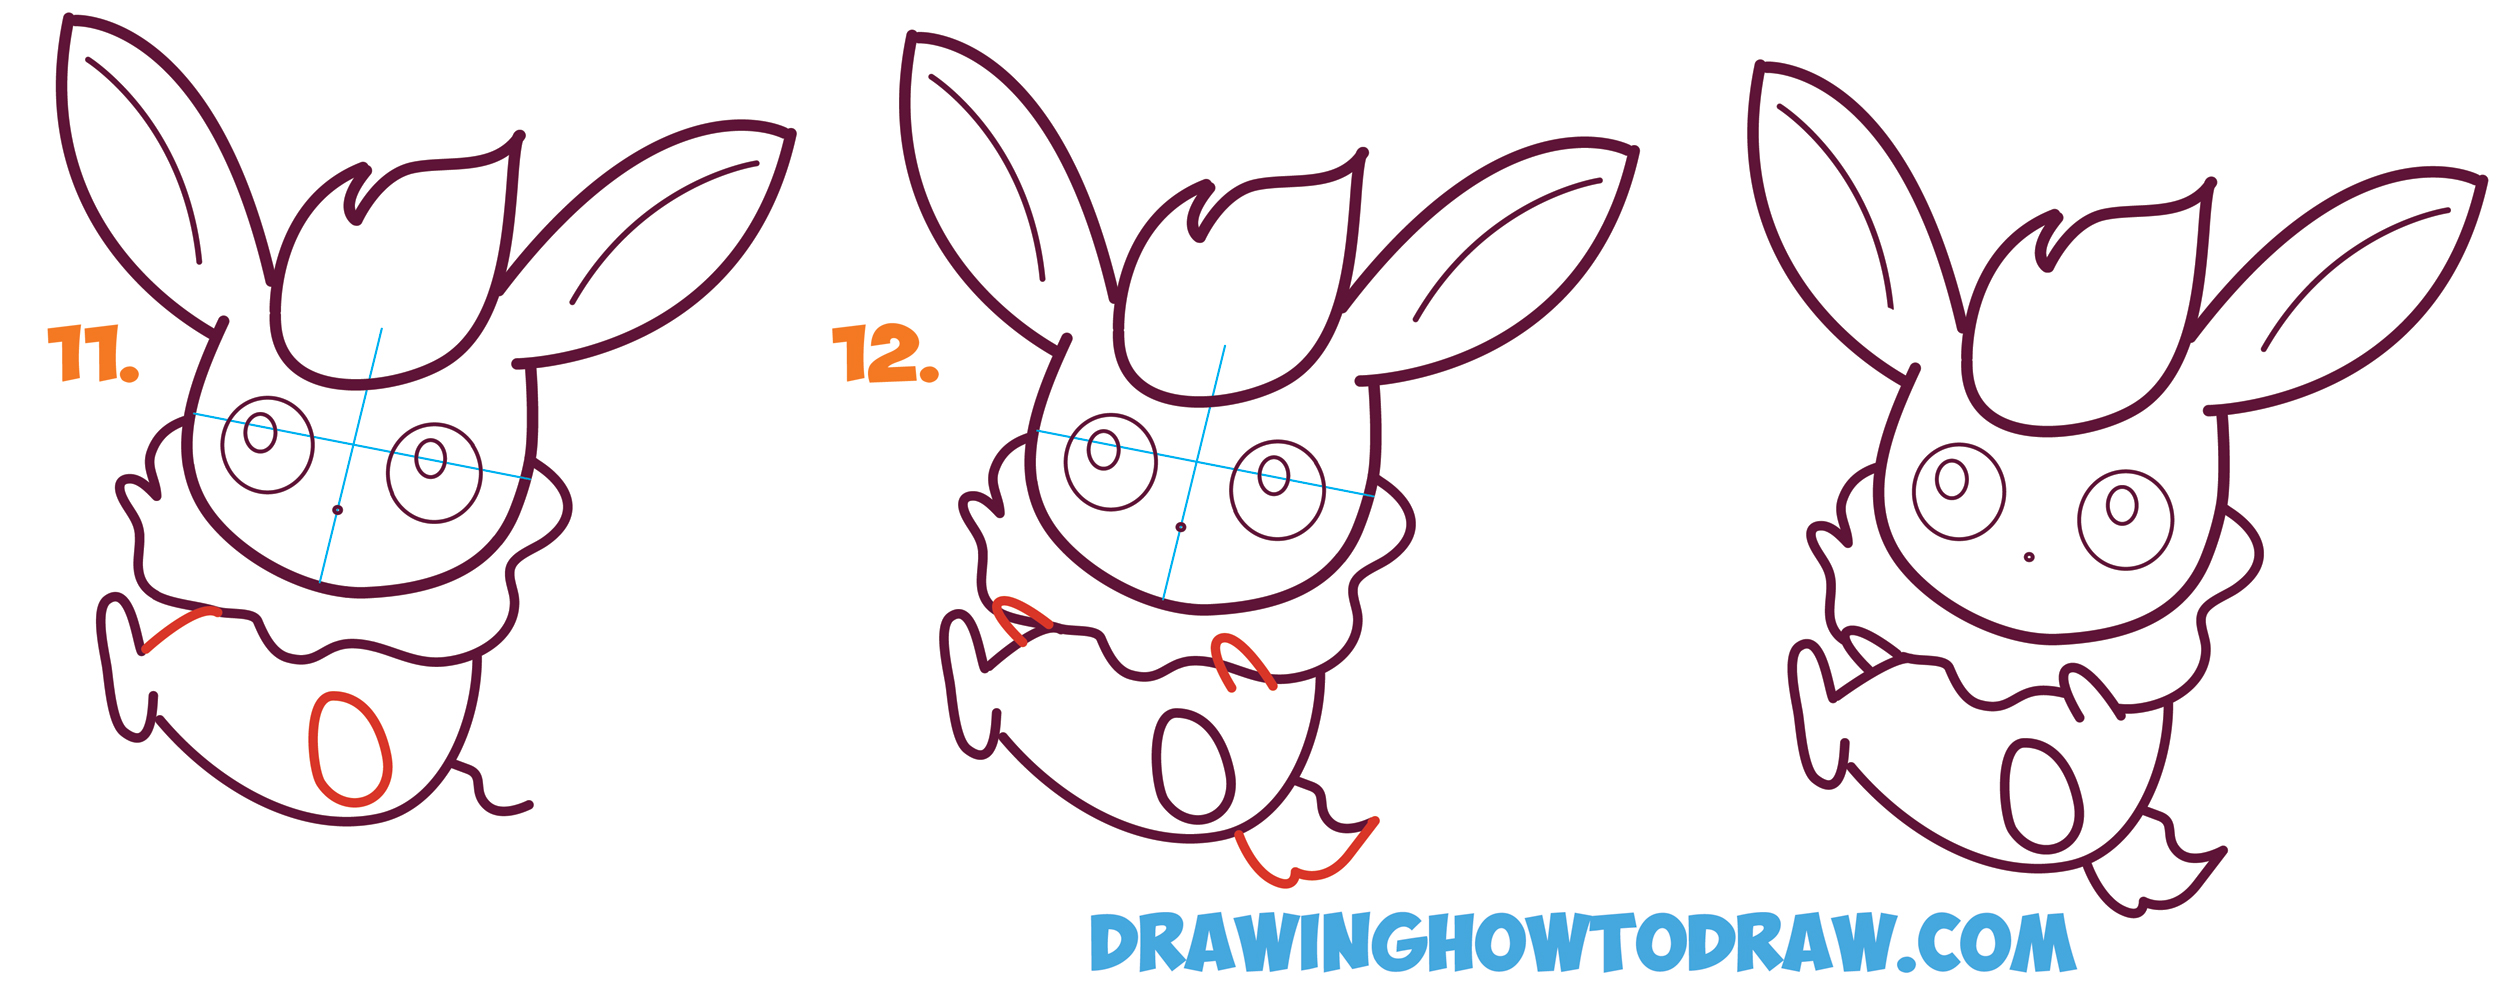 Cute pokemon flareon images pokemon images for Learn drawing online step by step